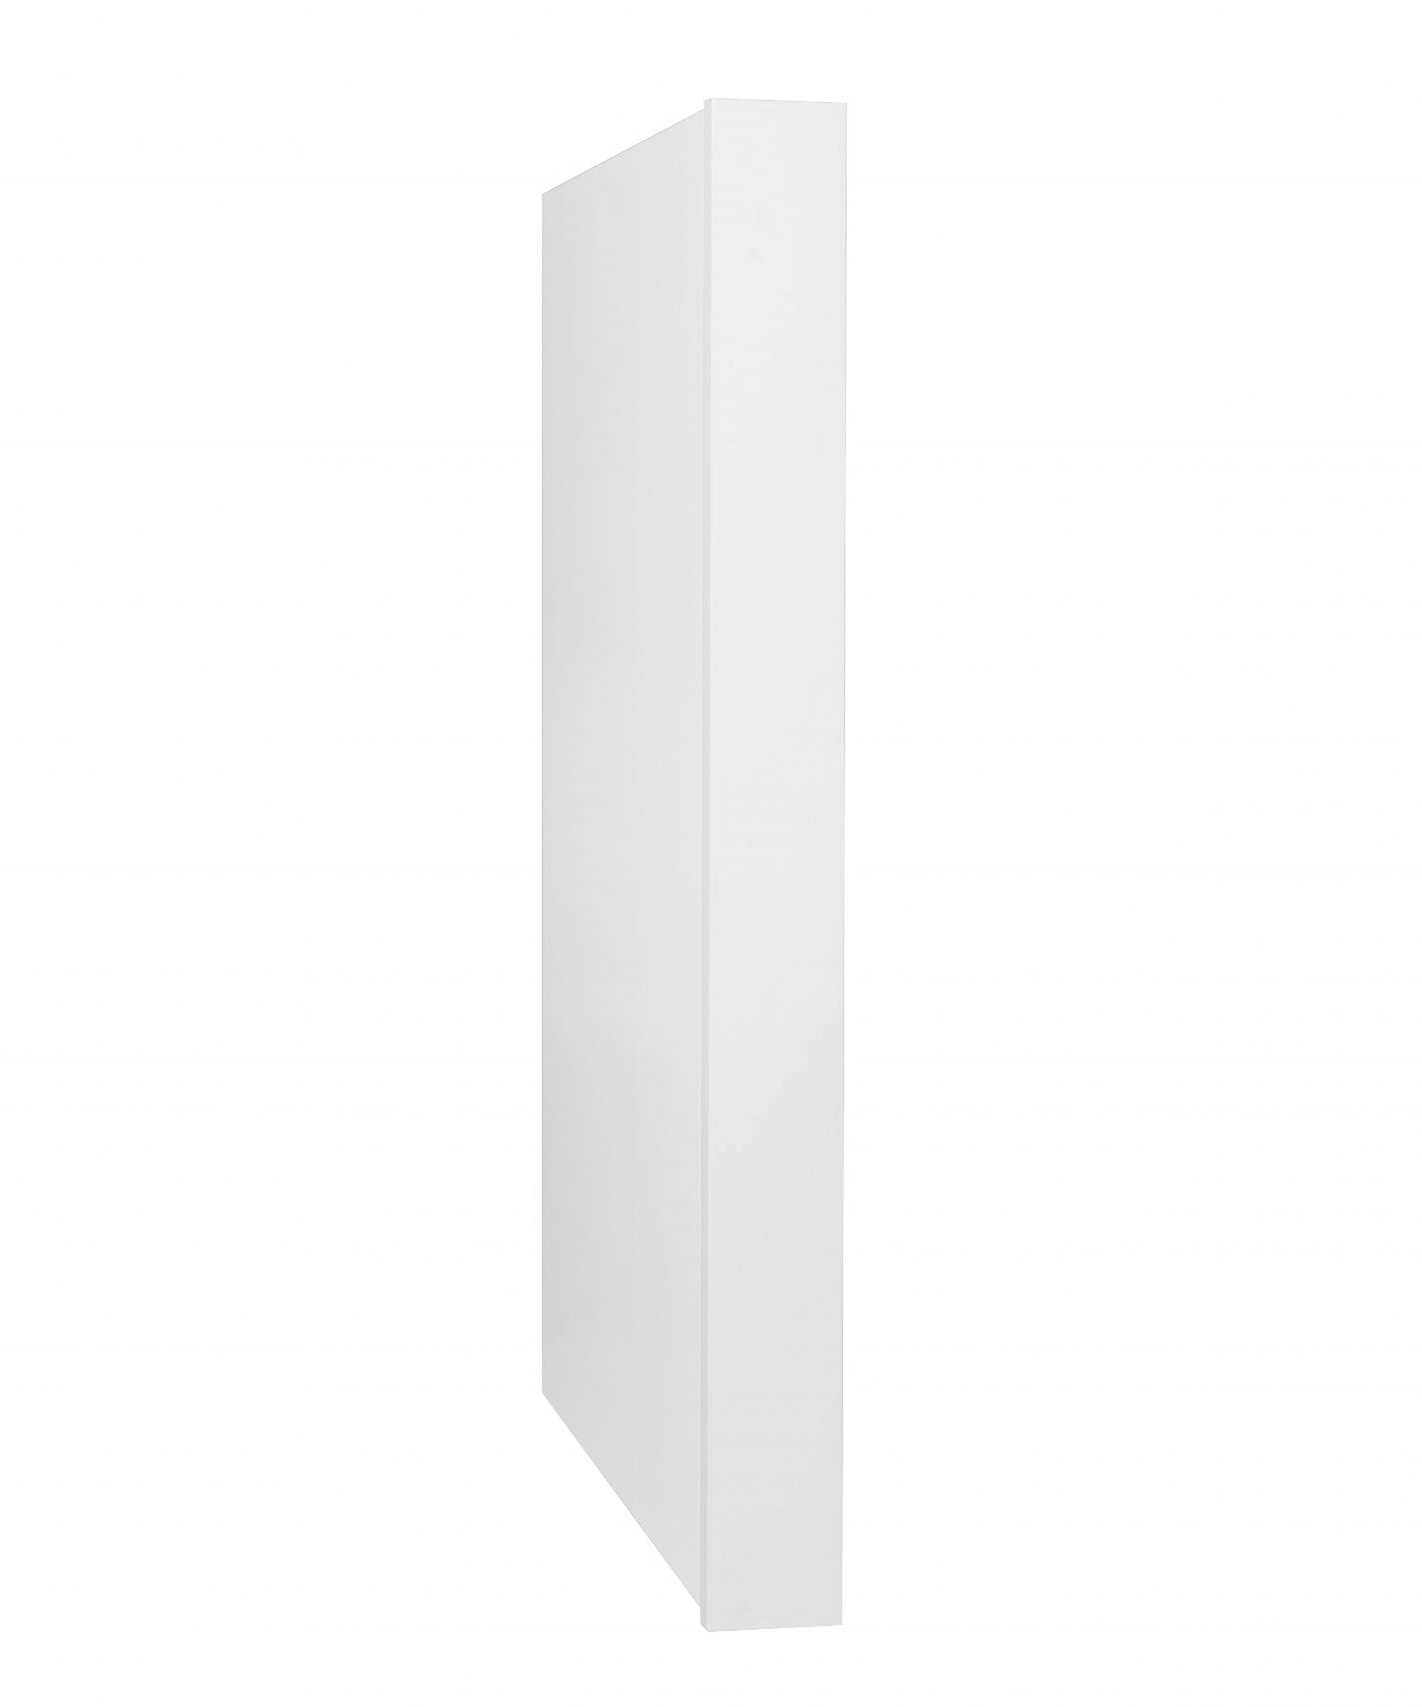 White Shaker Cabinetry RRP